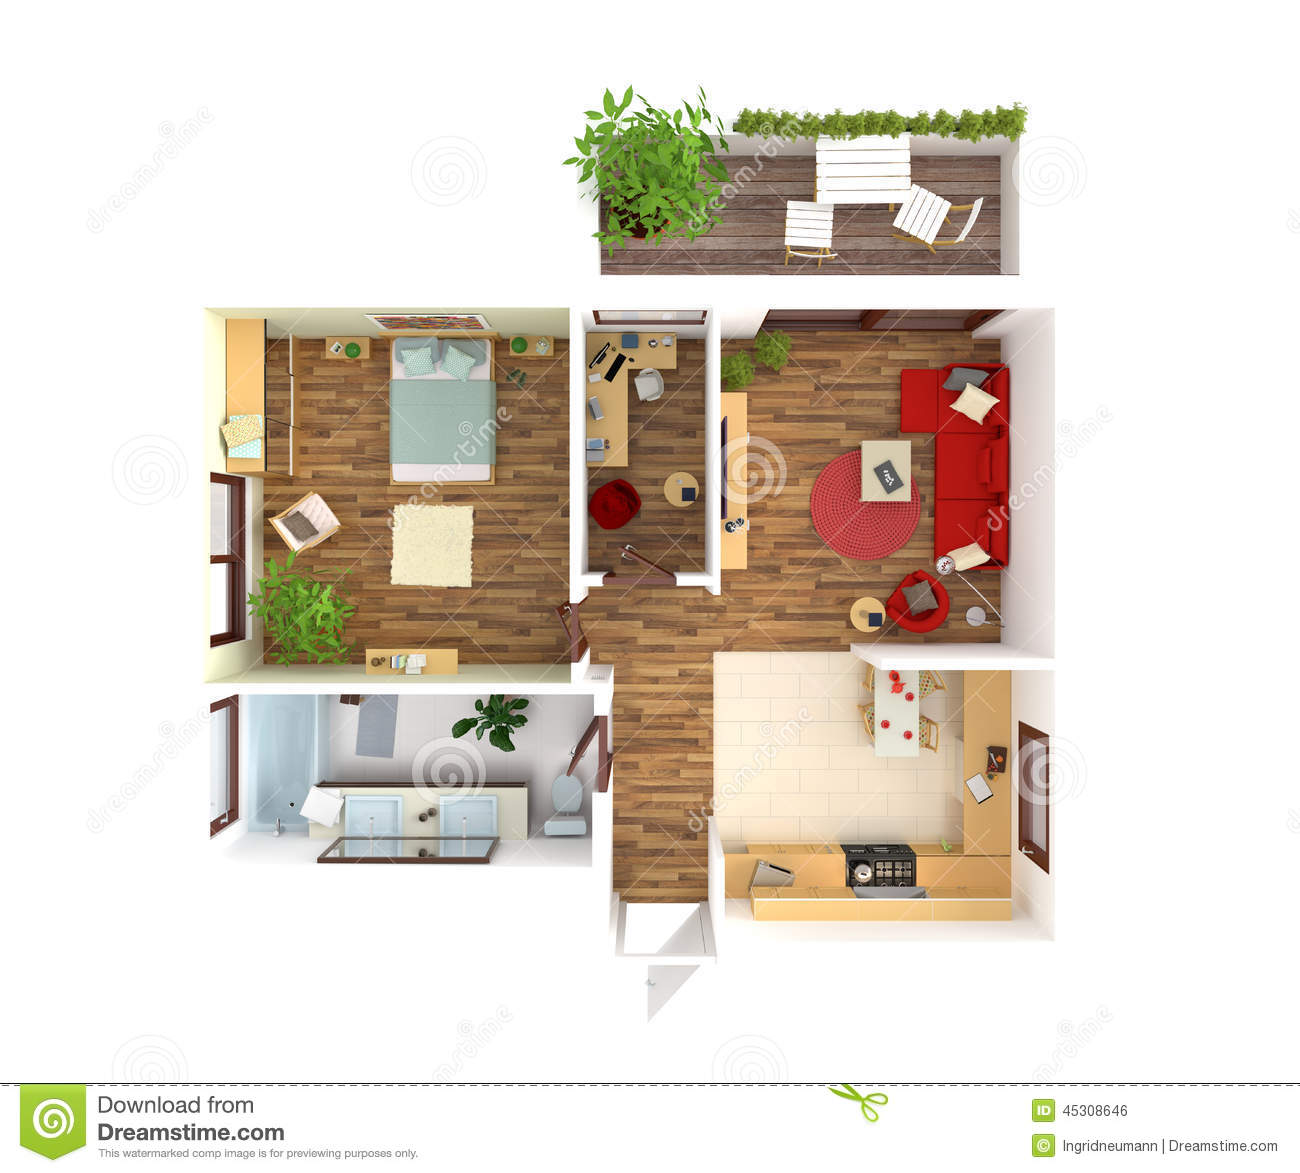 house plan top view interior design stock illustration. Black Bedroom Furniture Sets. Home Design Ideas